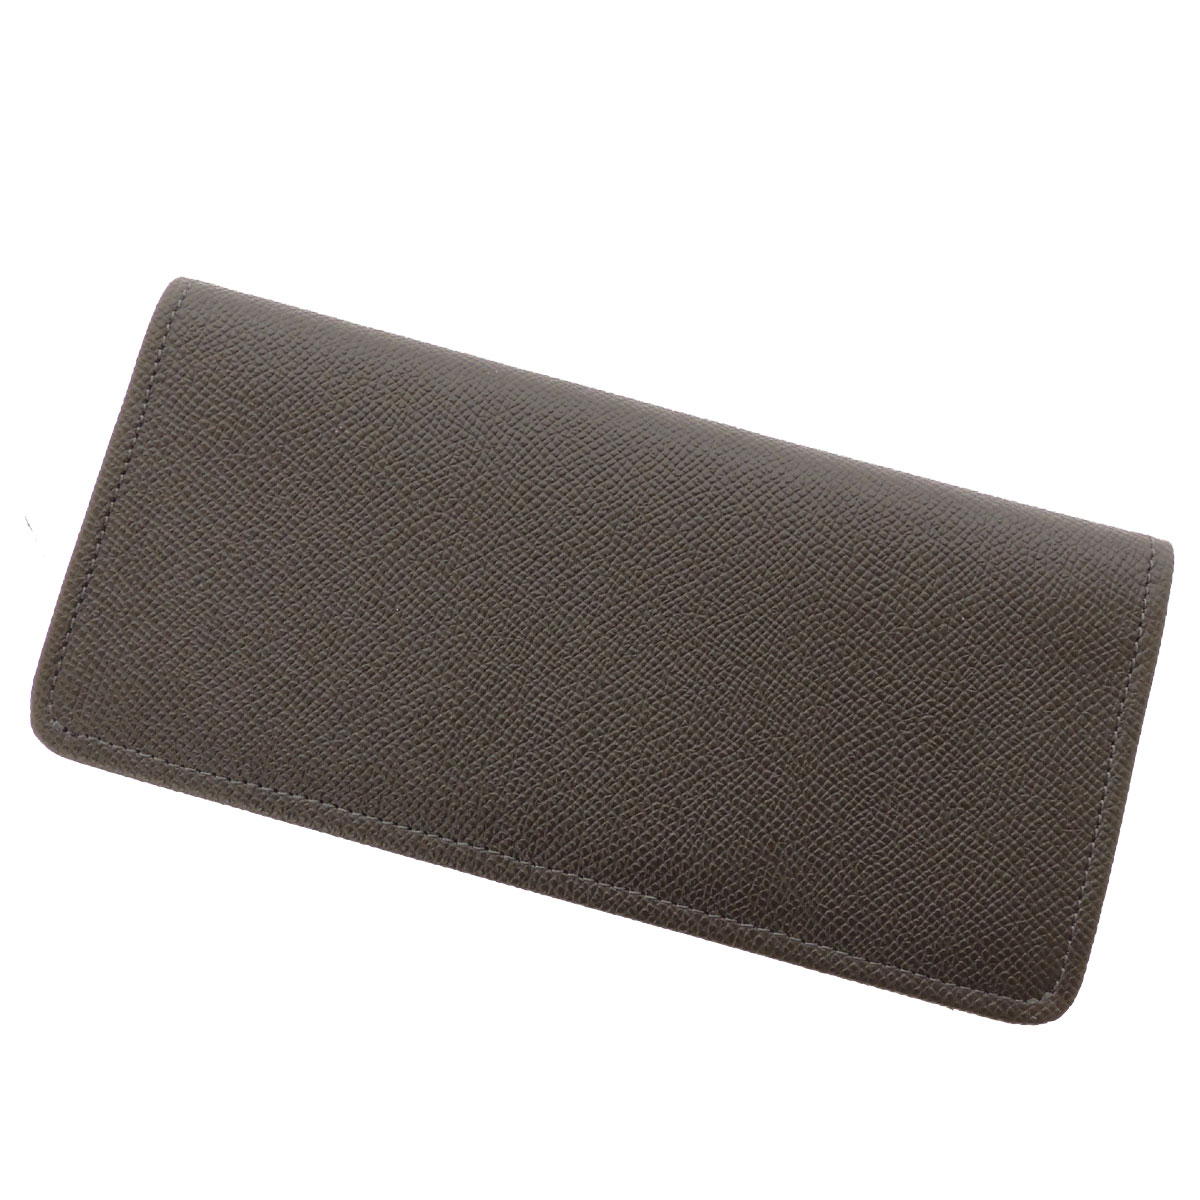 Dunhill motif wallets (purses and) leather men's